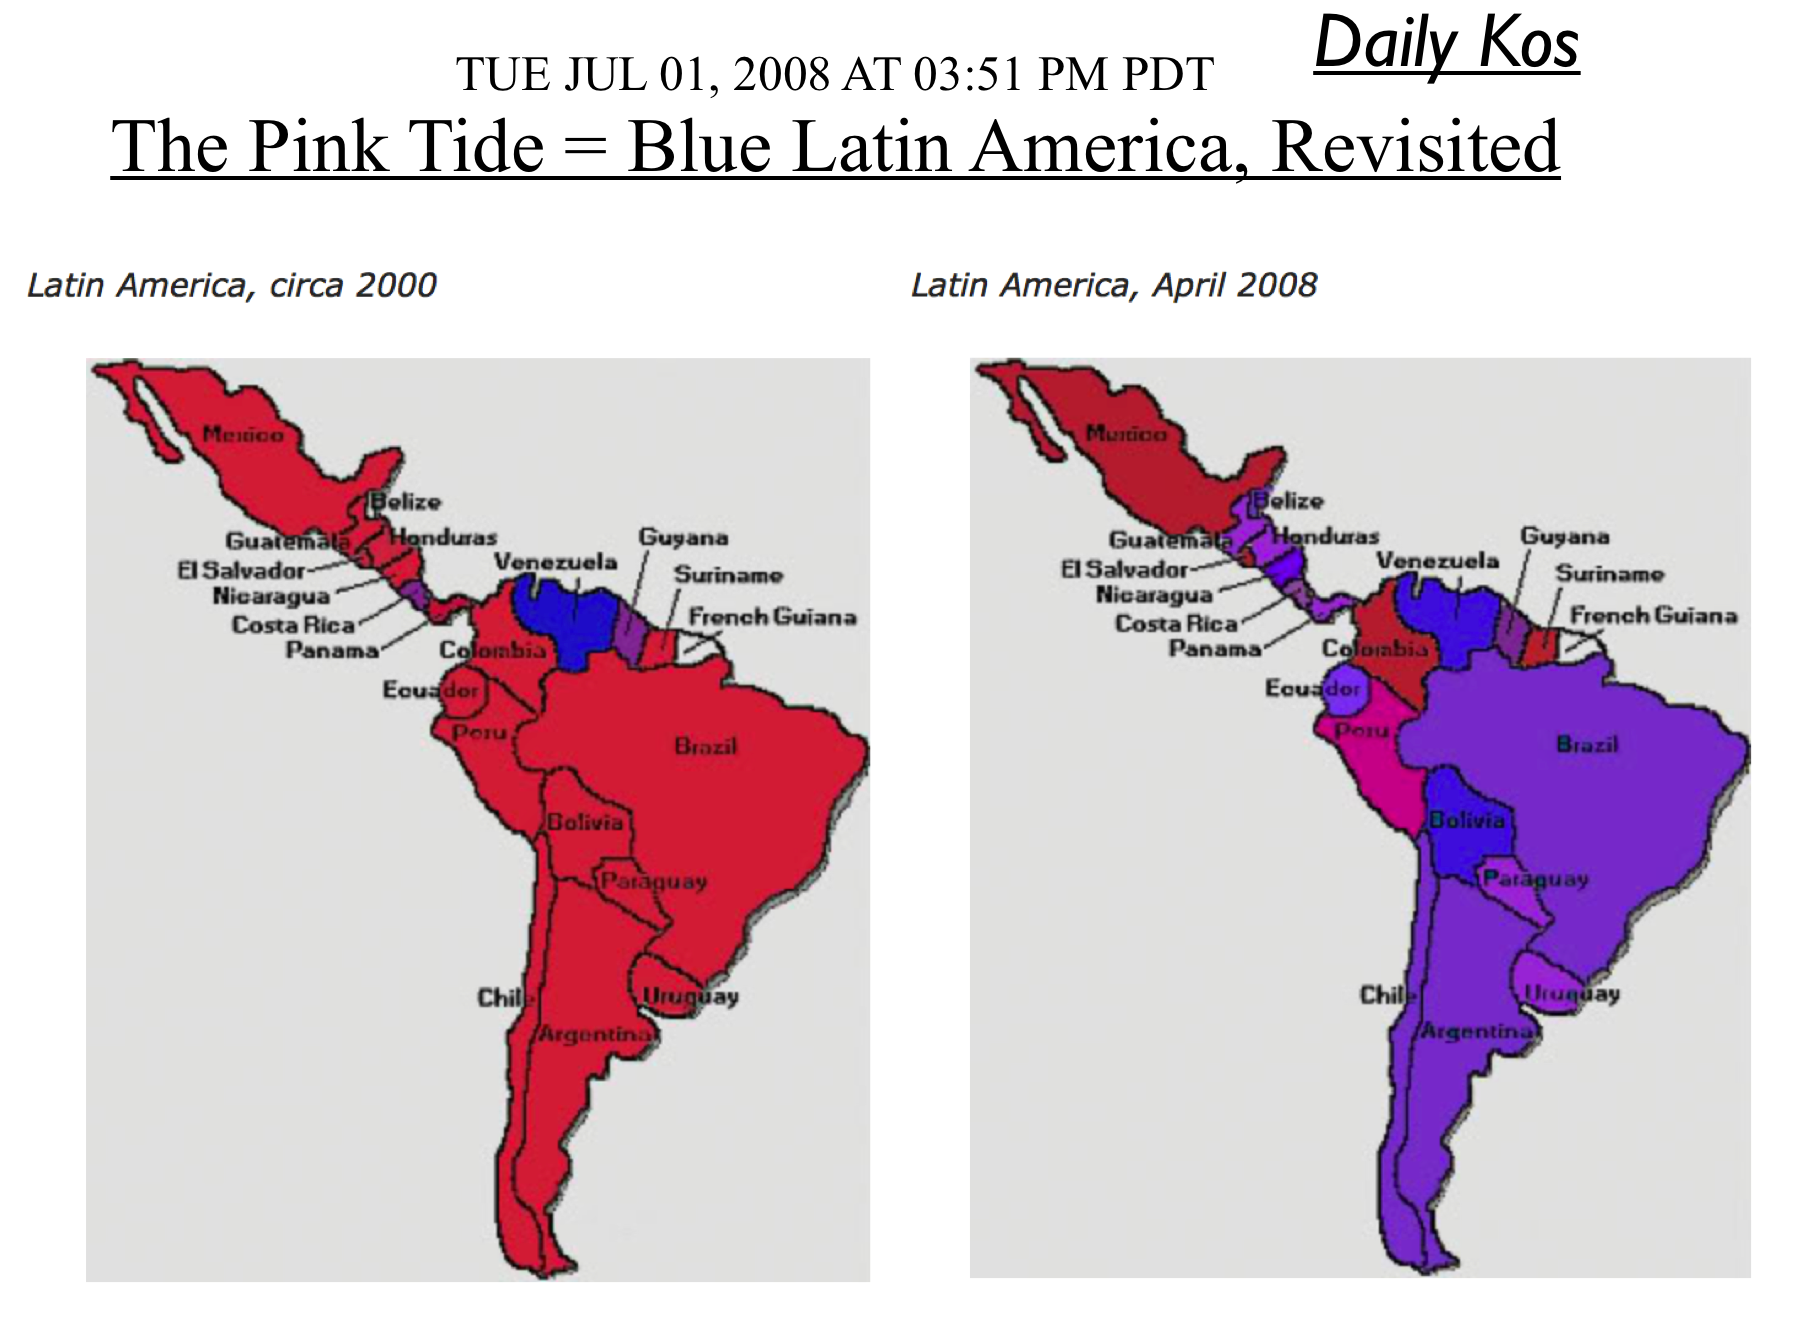 Attempts To Map Latin Americas Political Spectrum GeoCurrents - Political leanings map us